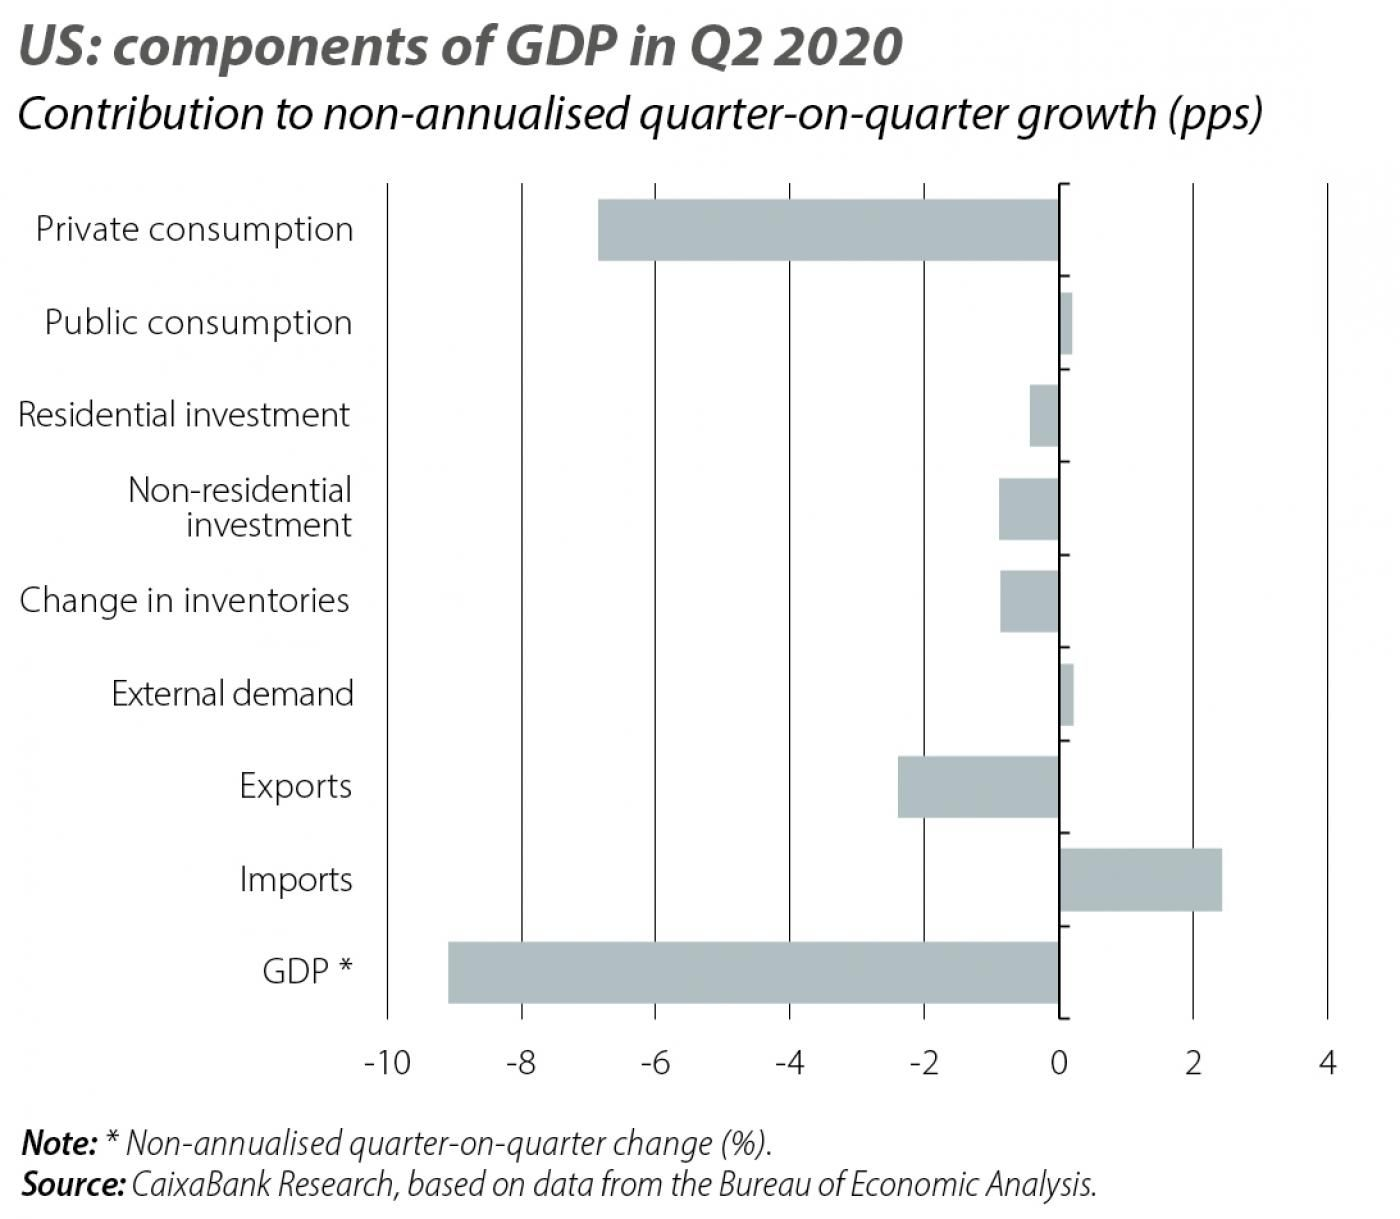 US: components of GDP in Q2 2020